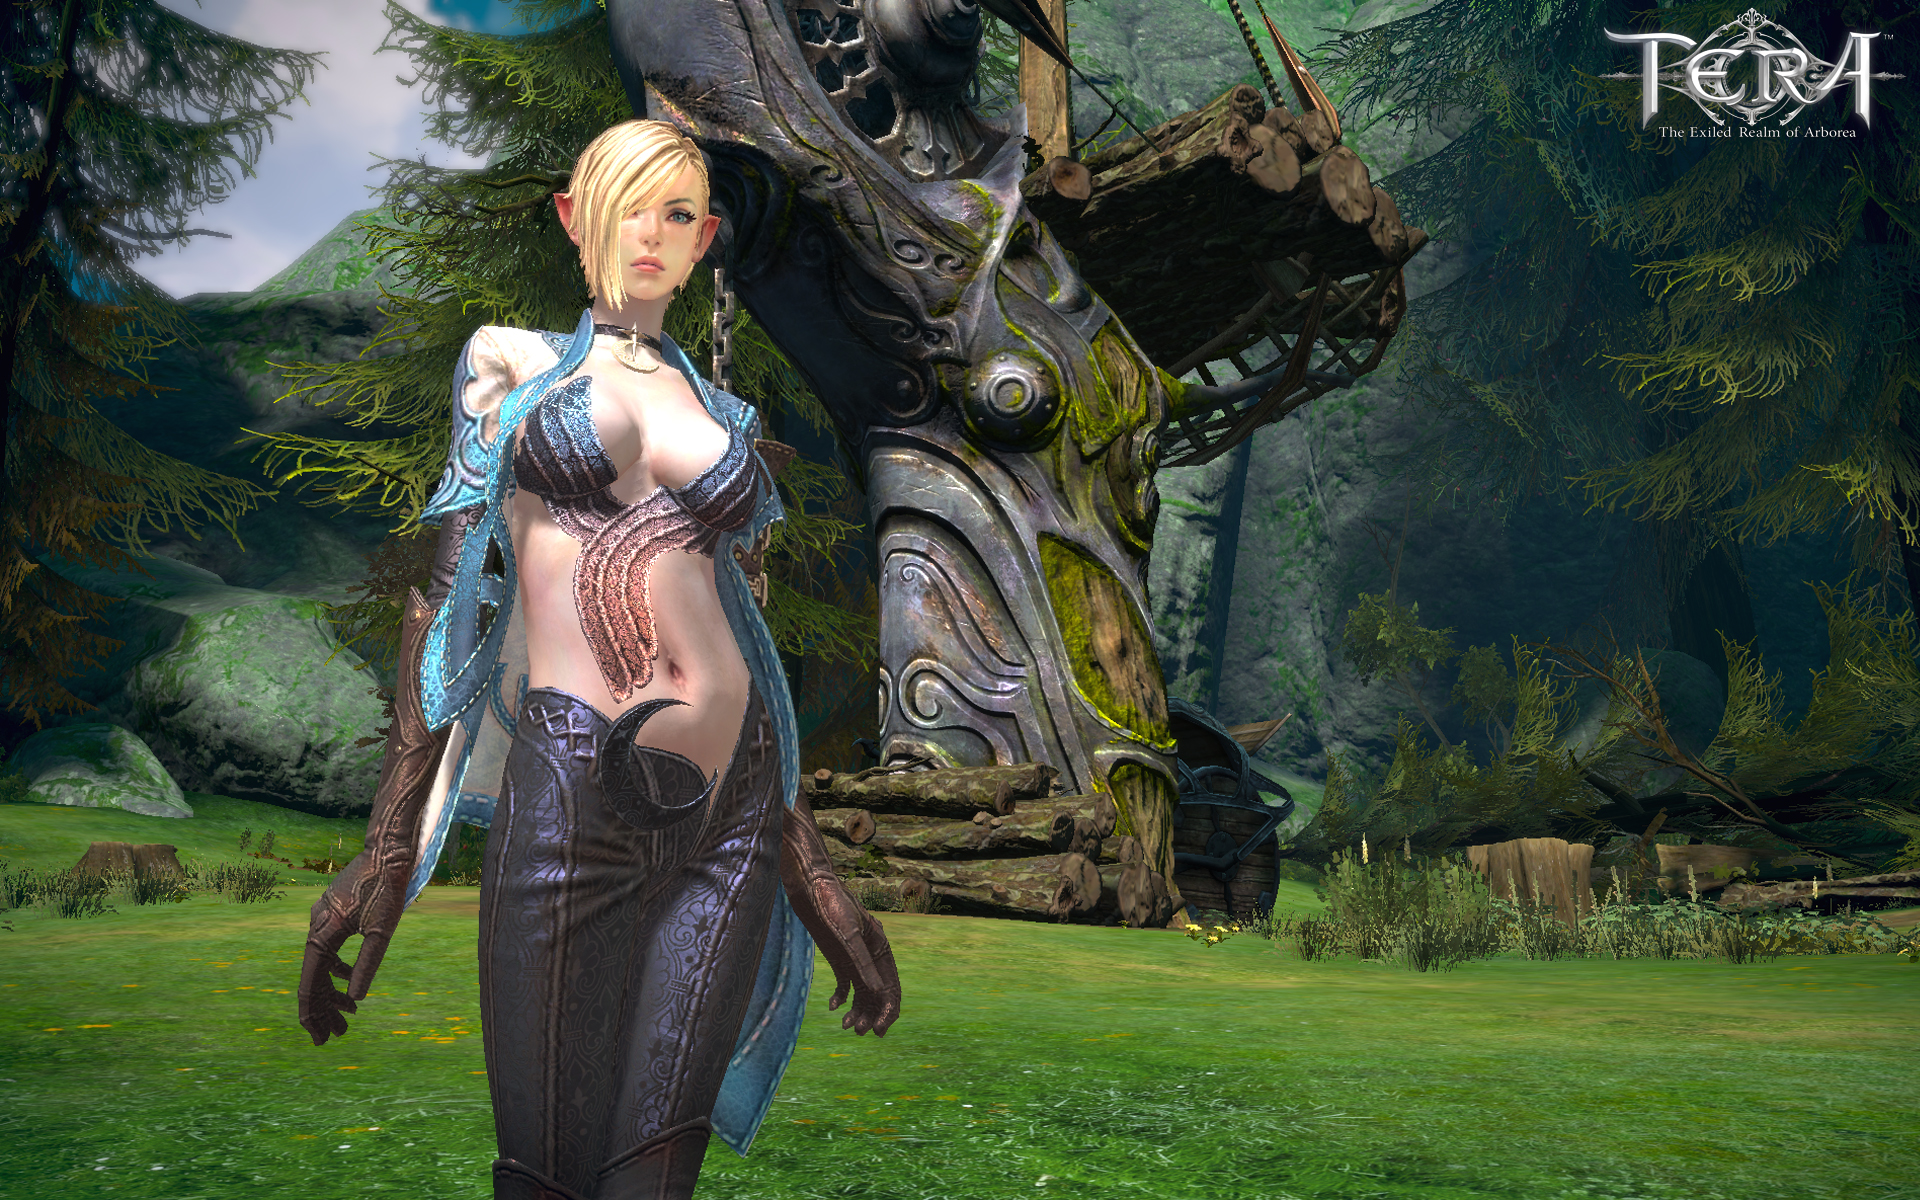 1920x1200 TERA desktop PC and Mac wallpaper